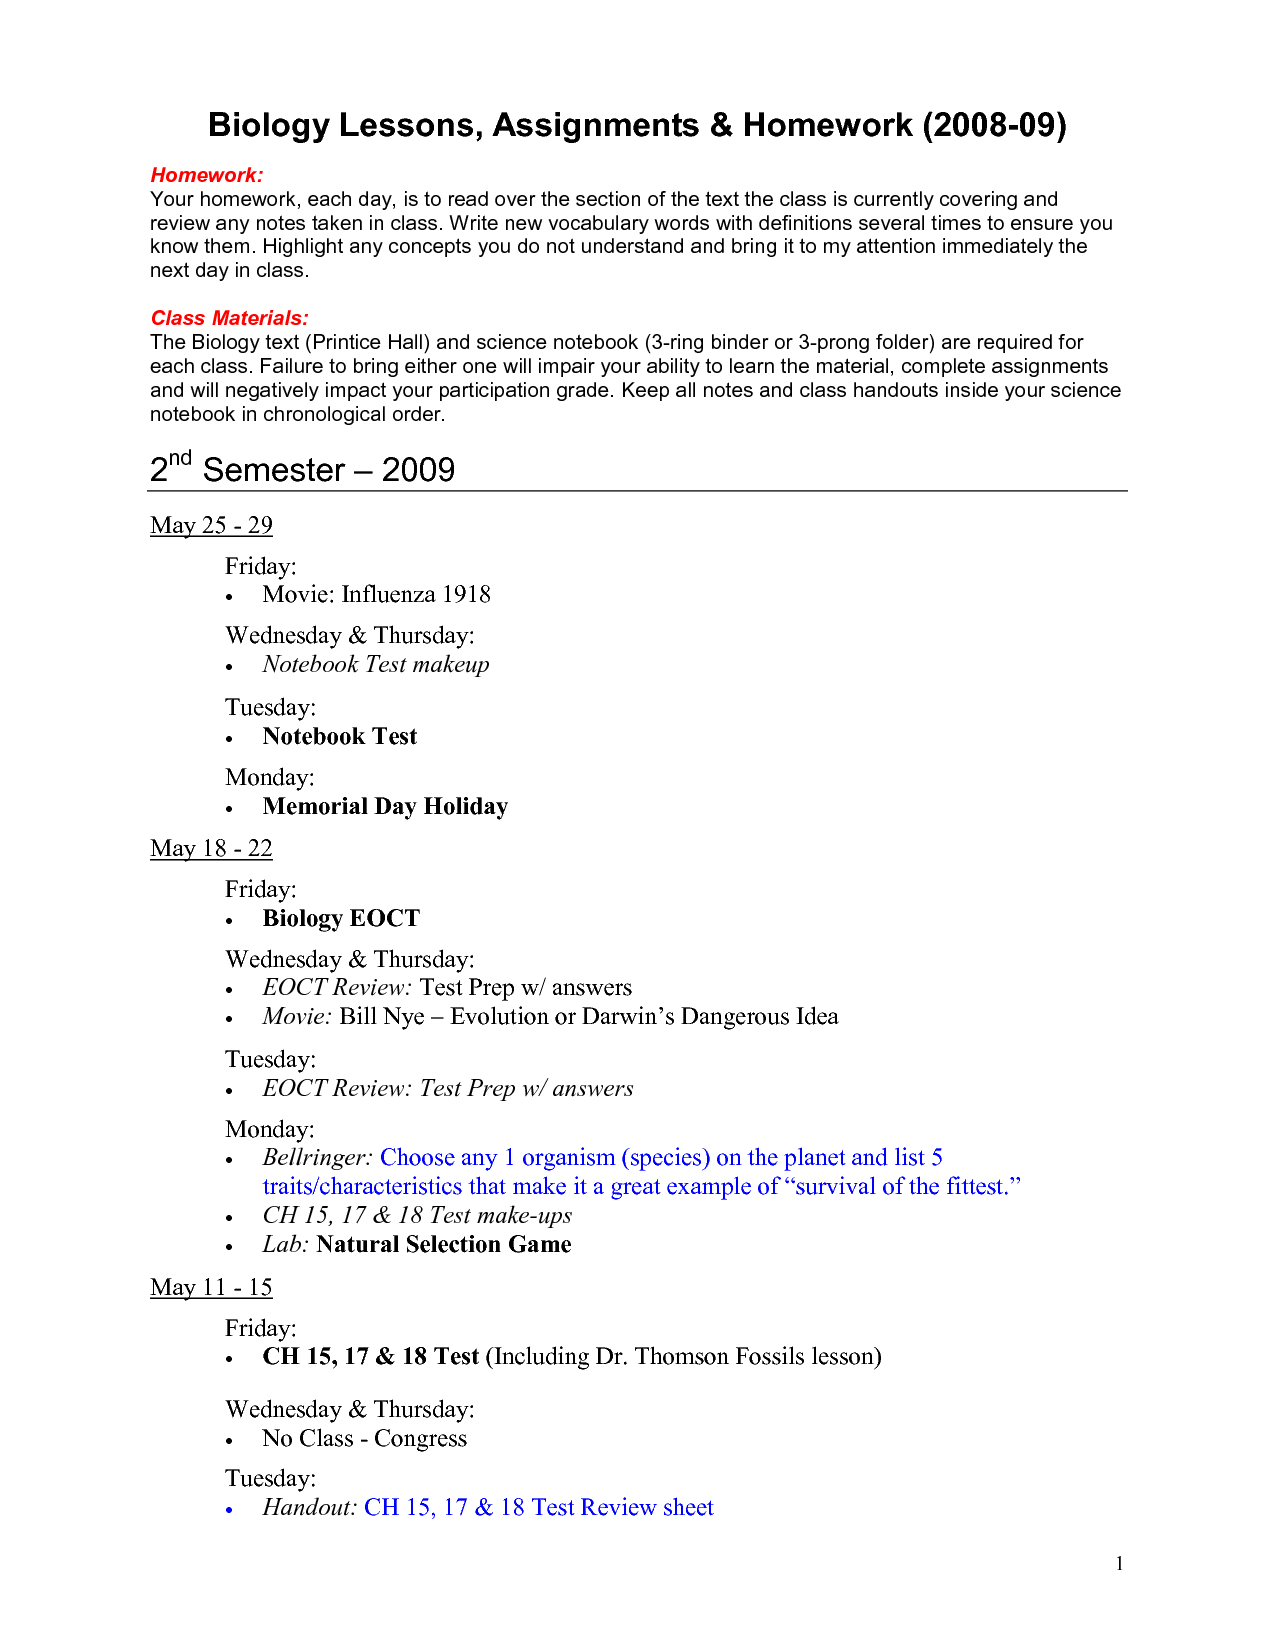 27 Scientific Method Worksheet Answers